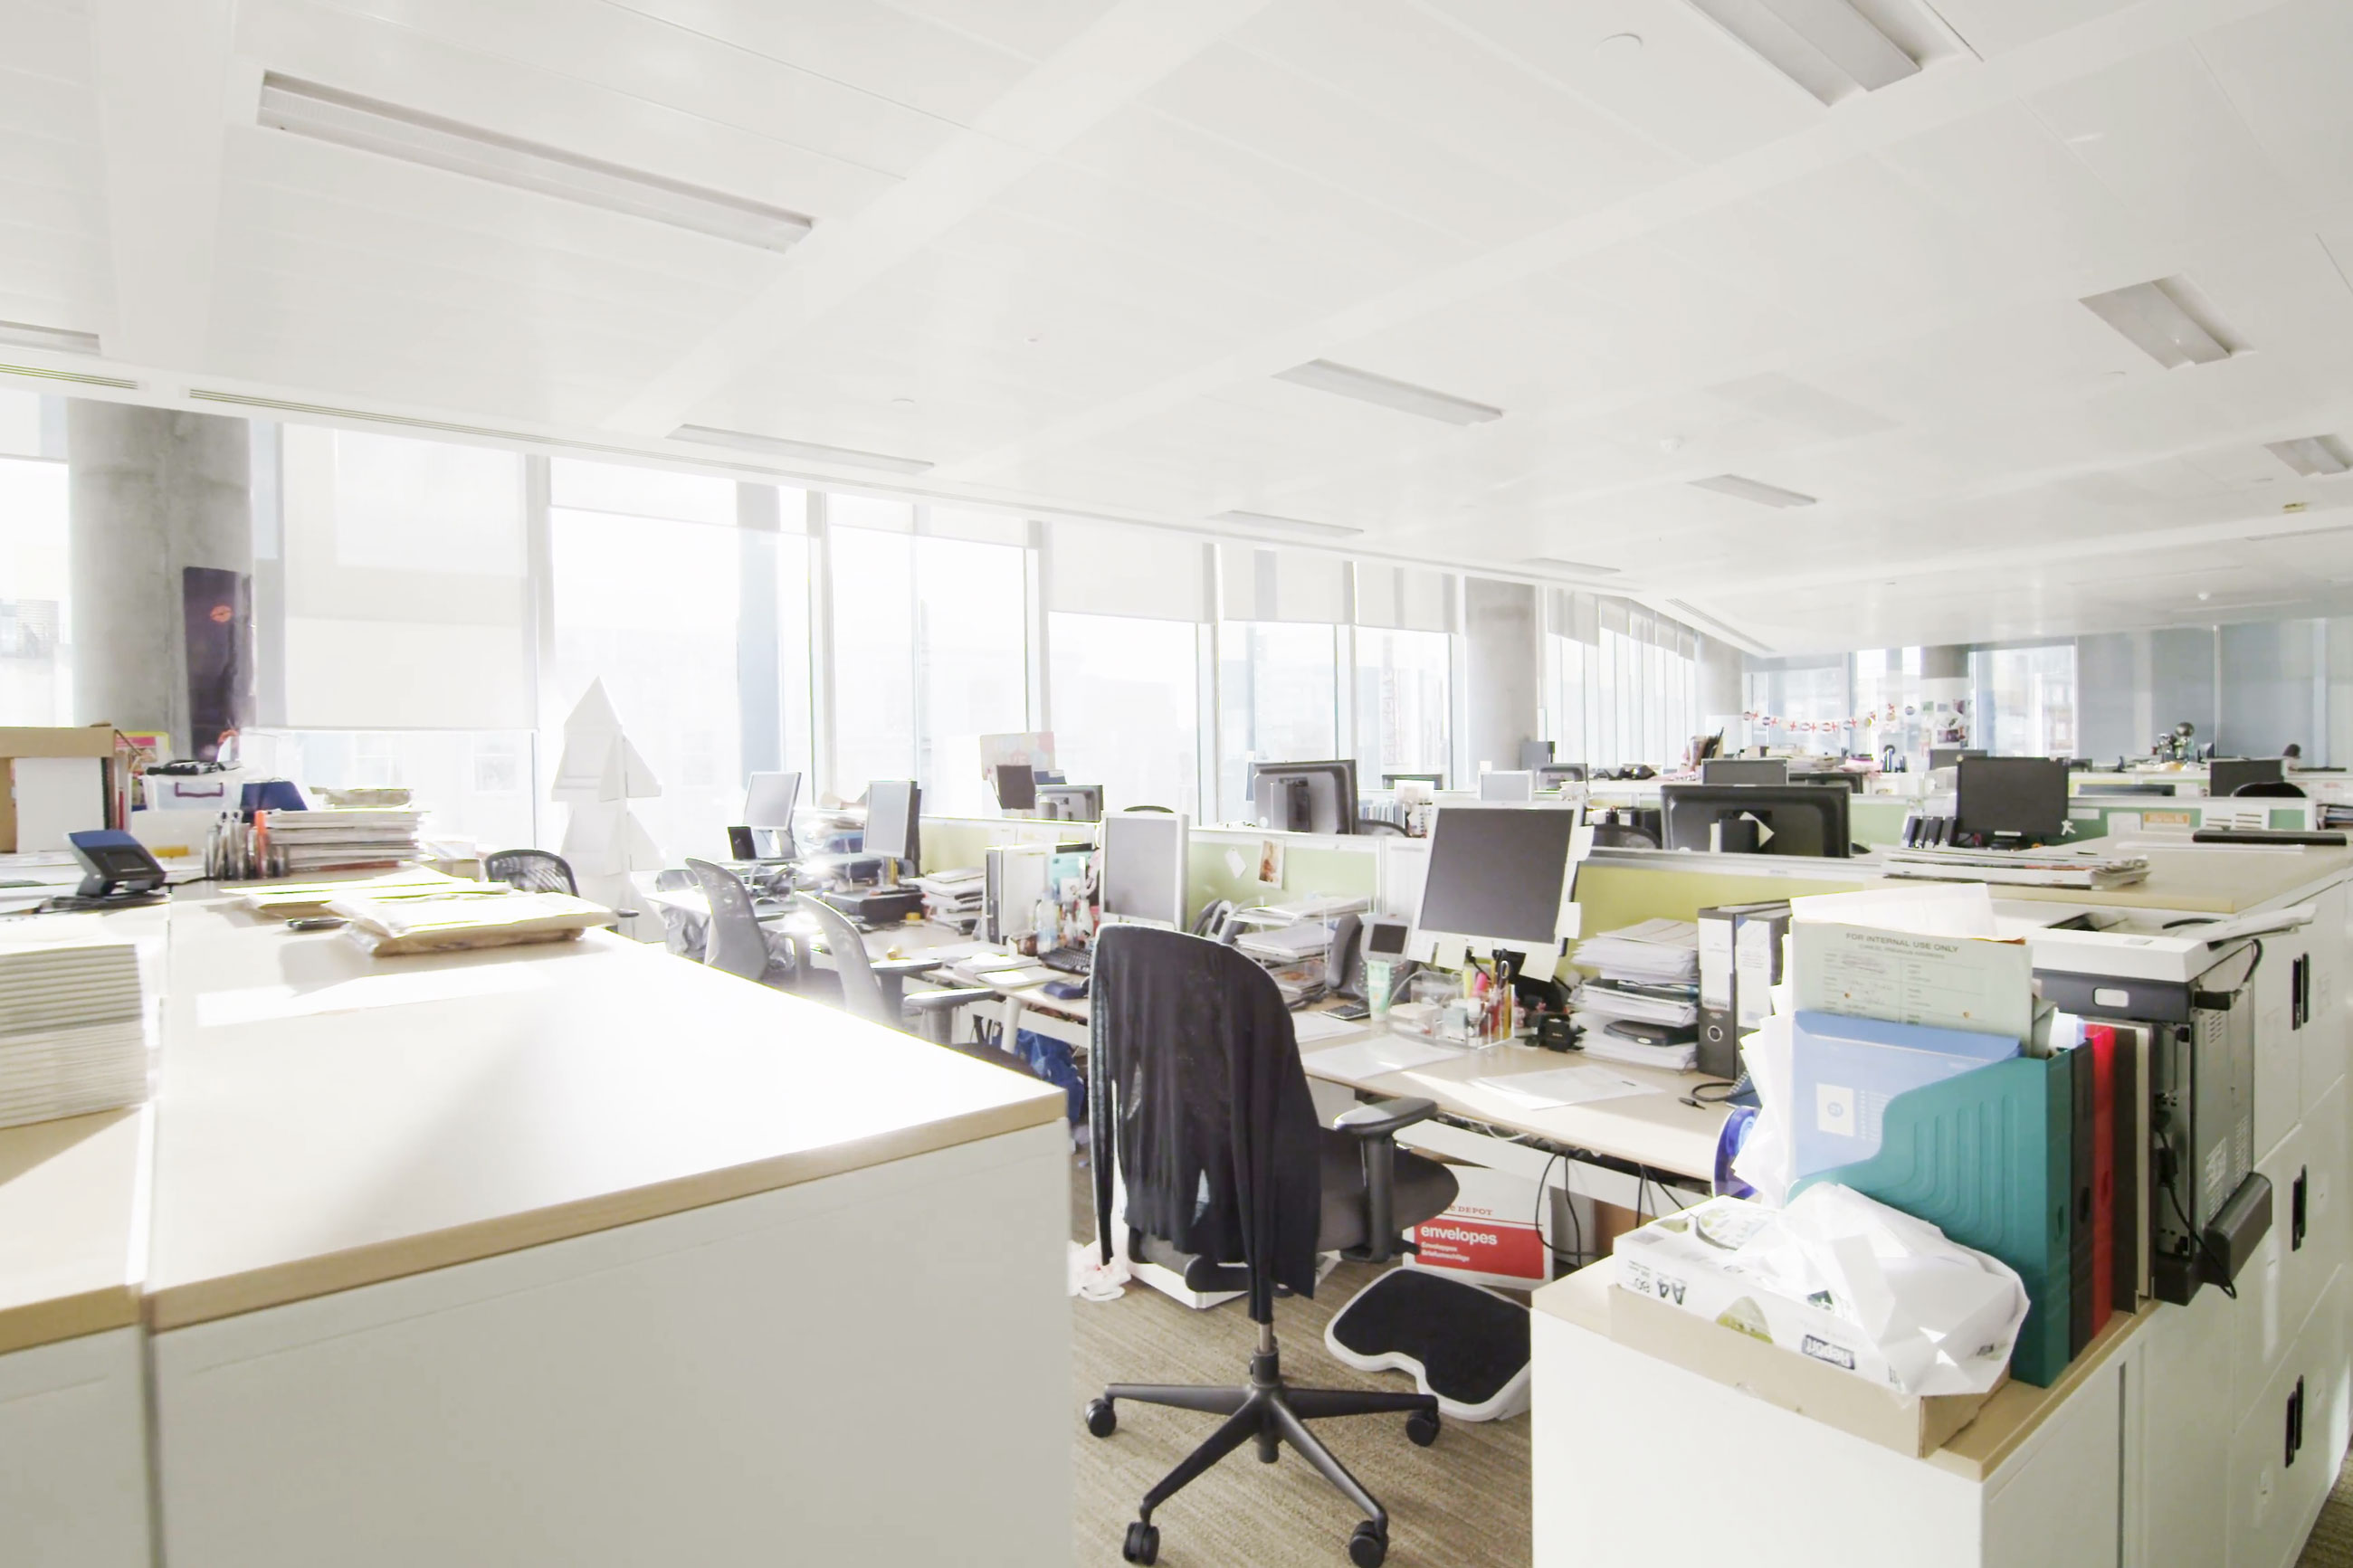 Over-Lighting in Commercial Buildings